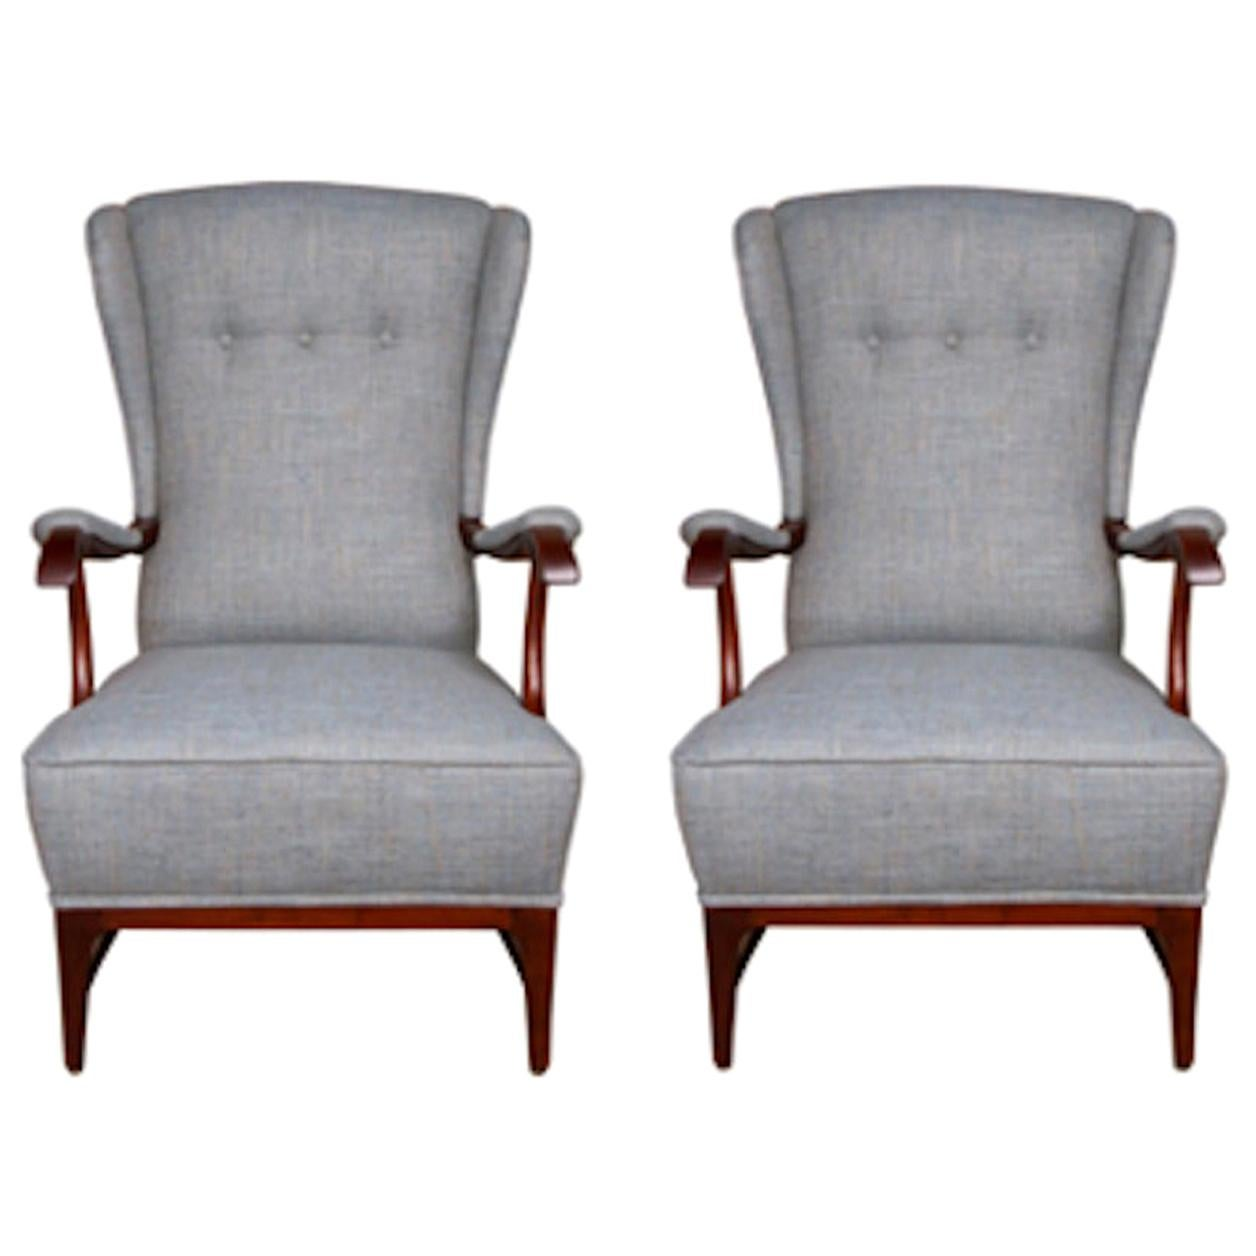 Pair of Midcentury Wingback Armchairs by Paolo Buffa